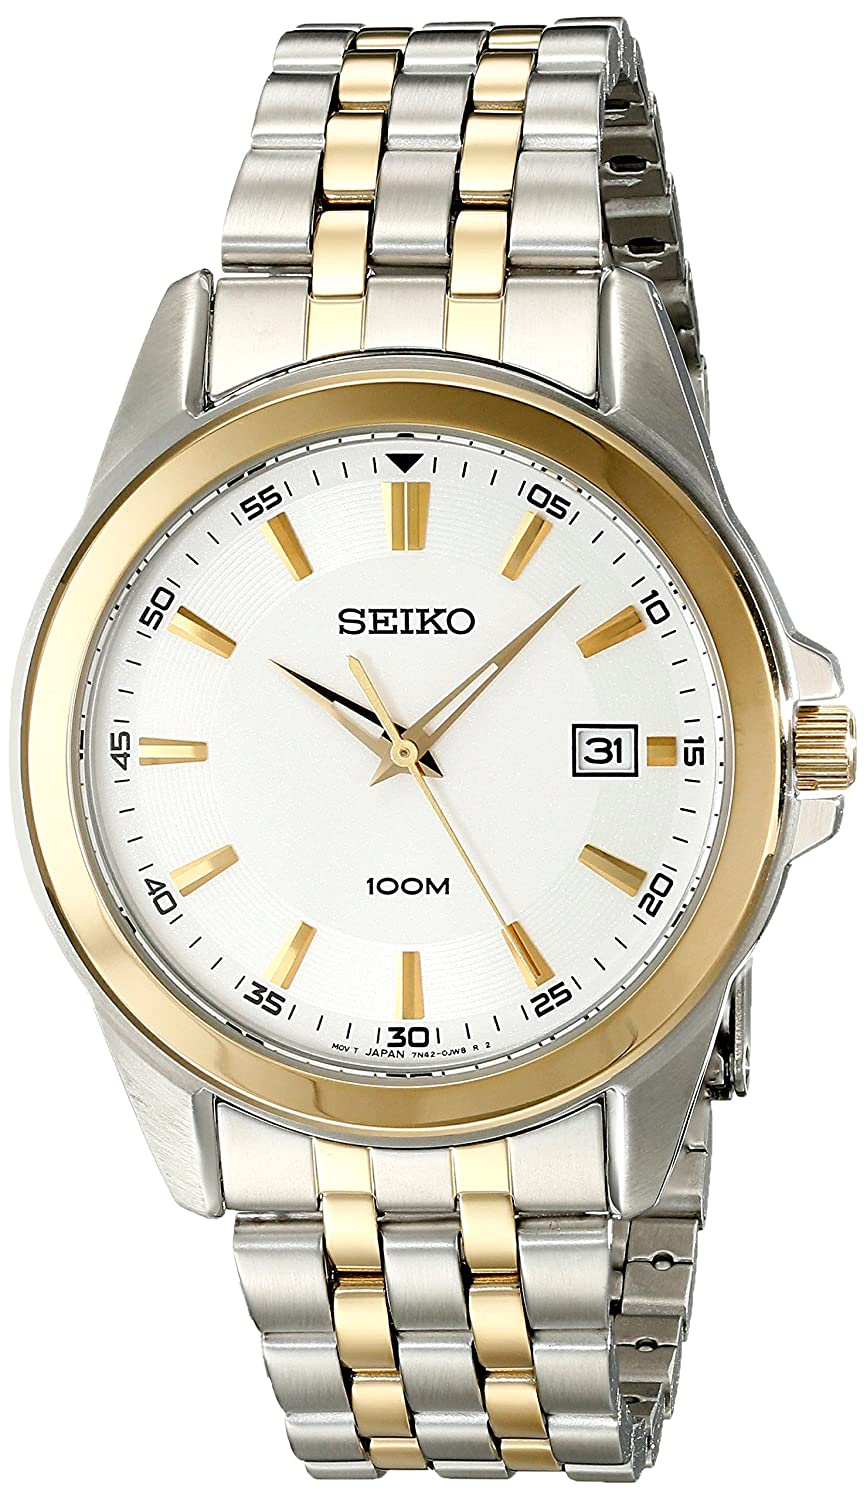 Seiko Best Affordable Watch Brands